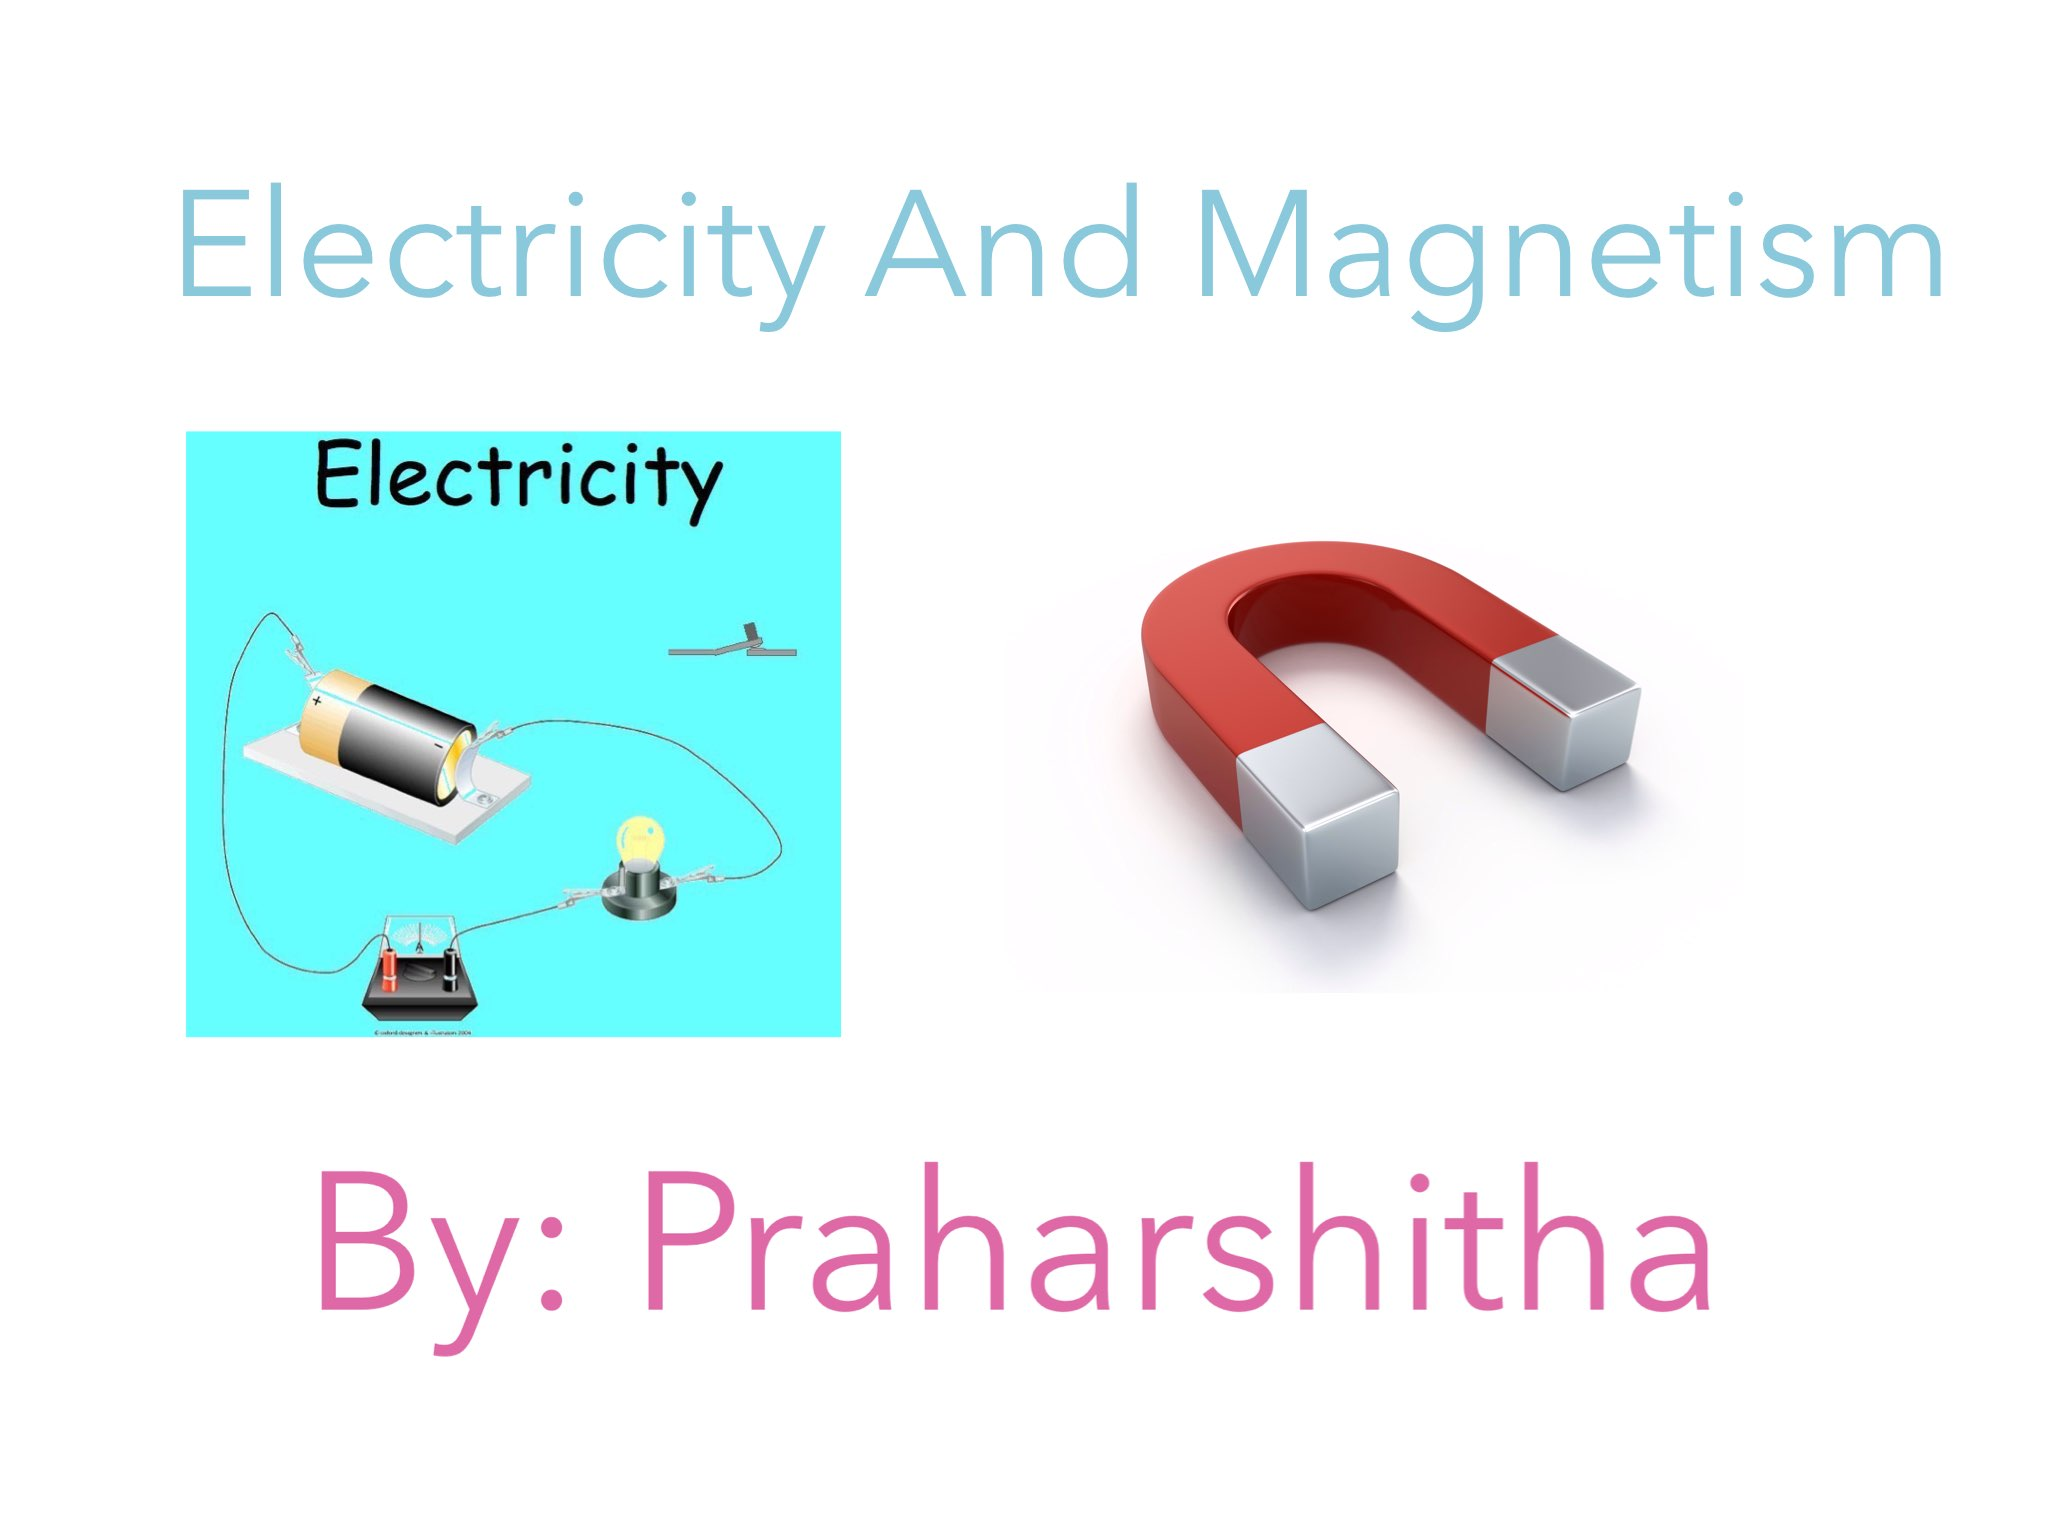 Play Electricity And Magnetism by Room 207 - on TinyTap